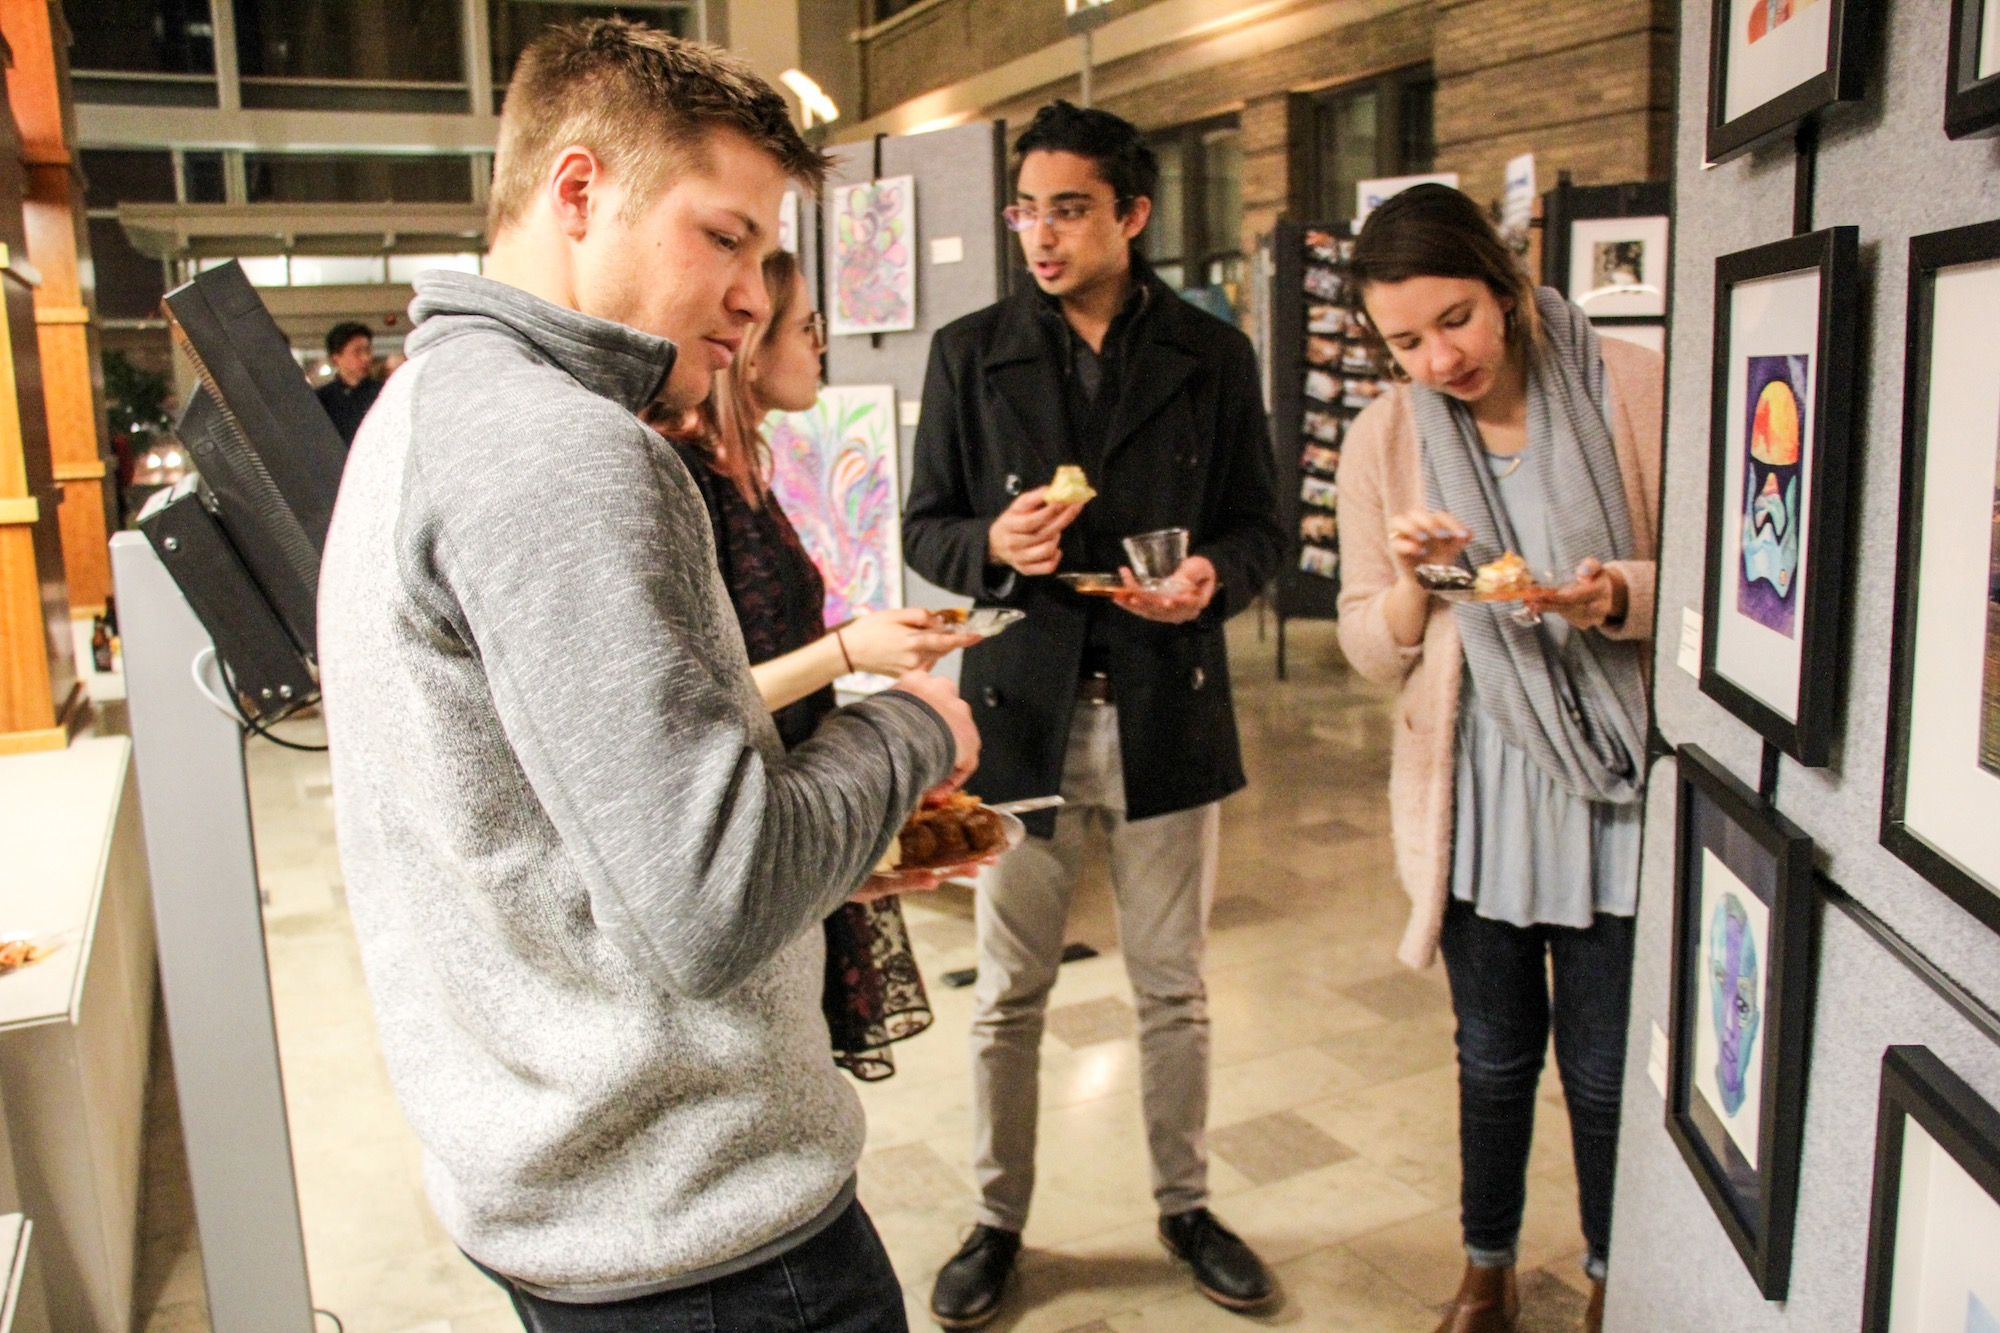 Students viewing exhibits at the 2018 Art Show